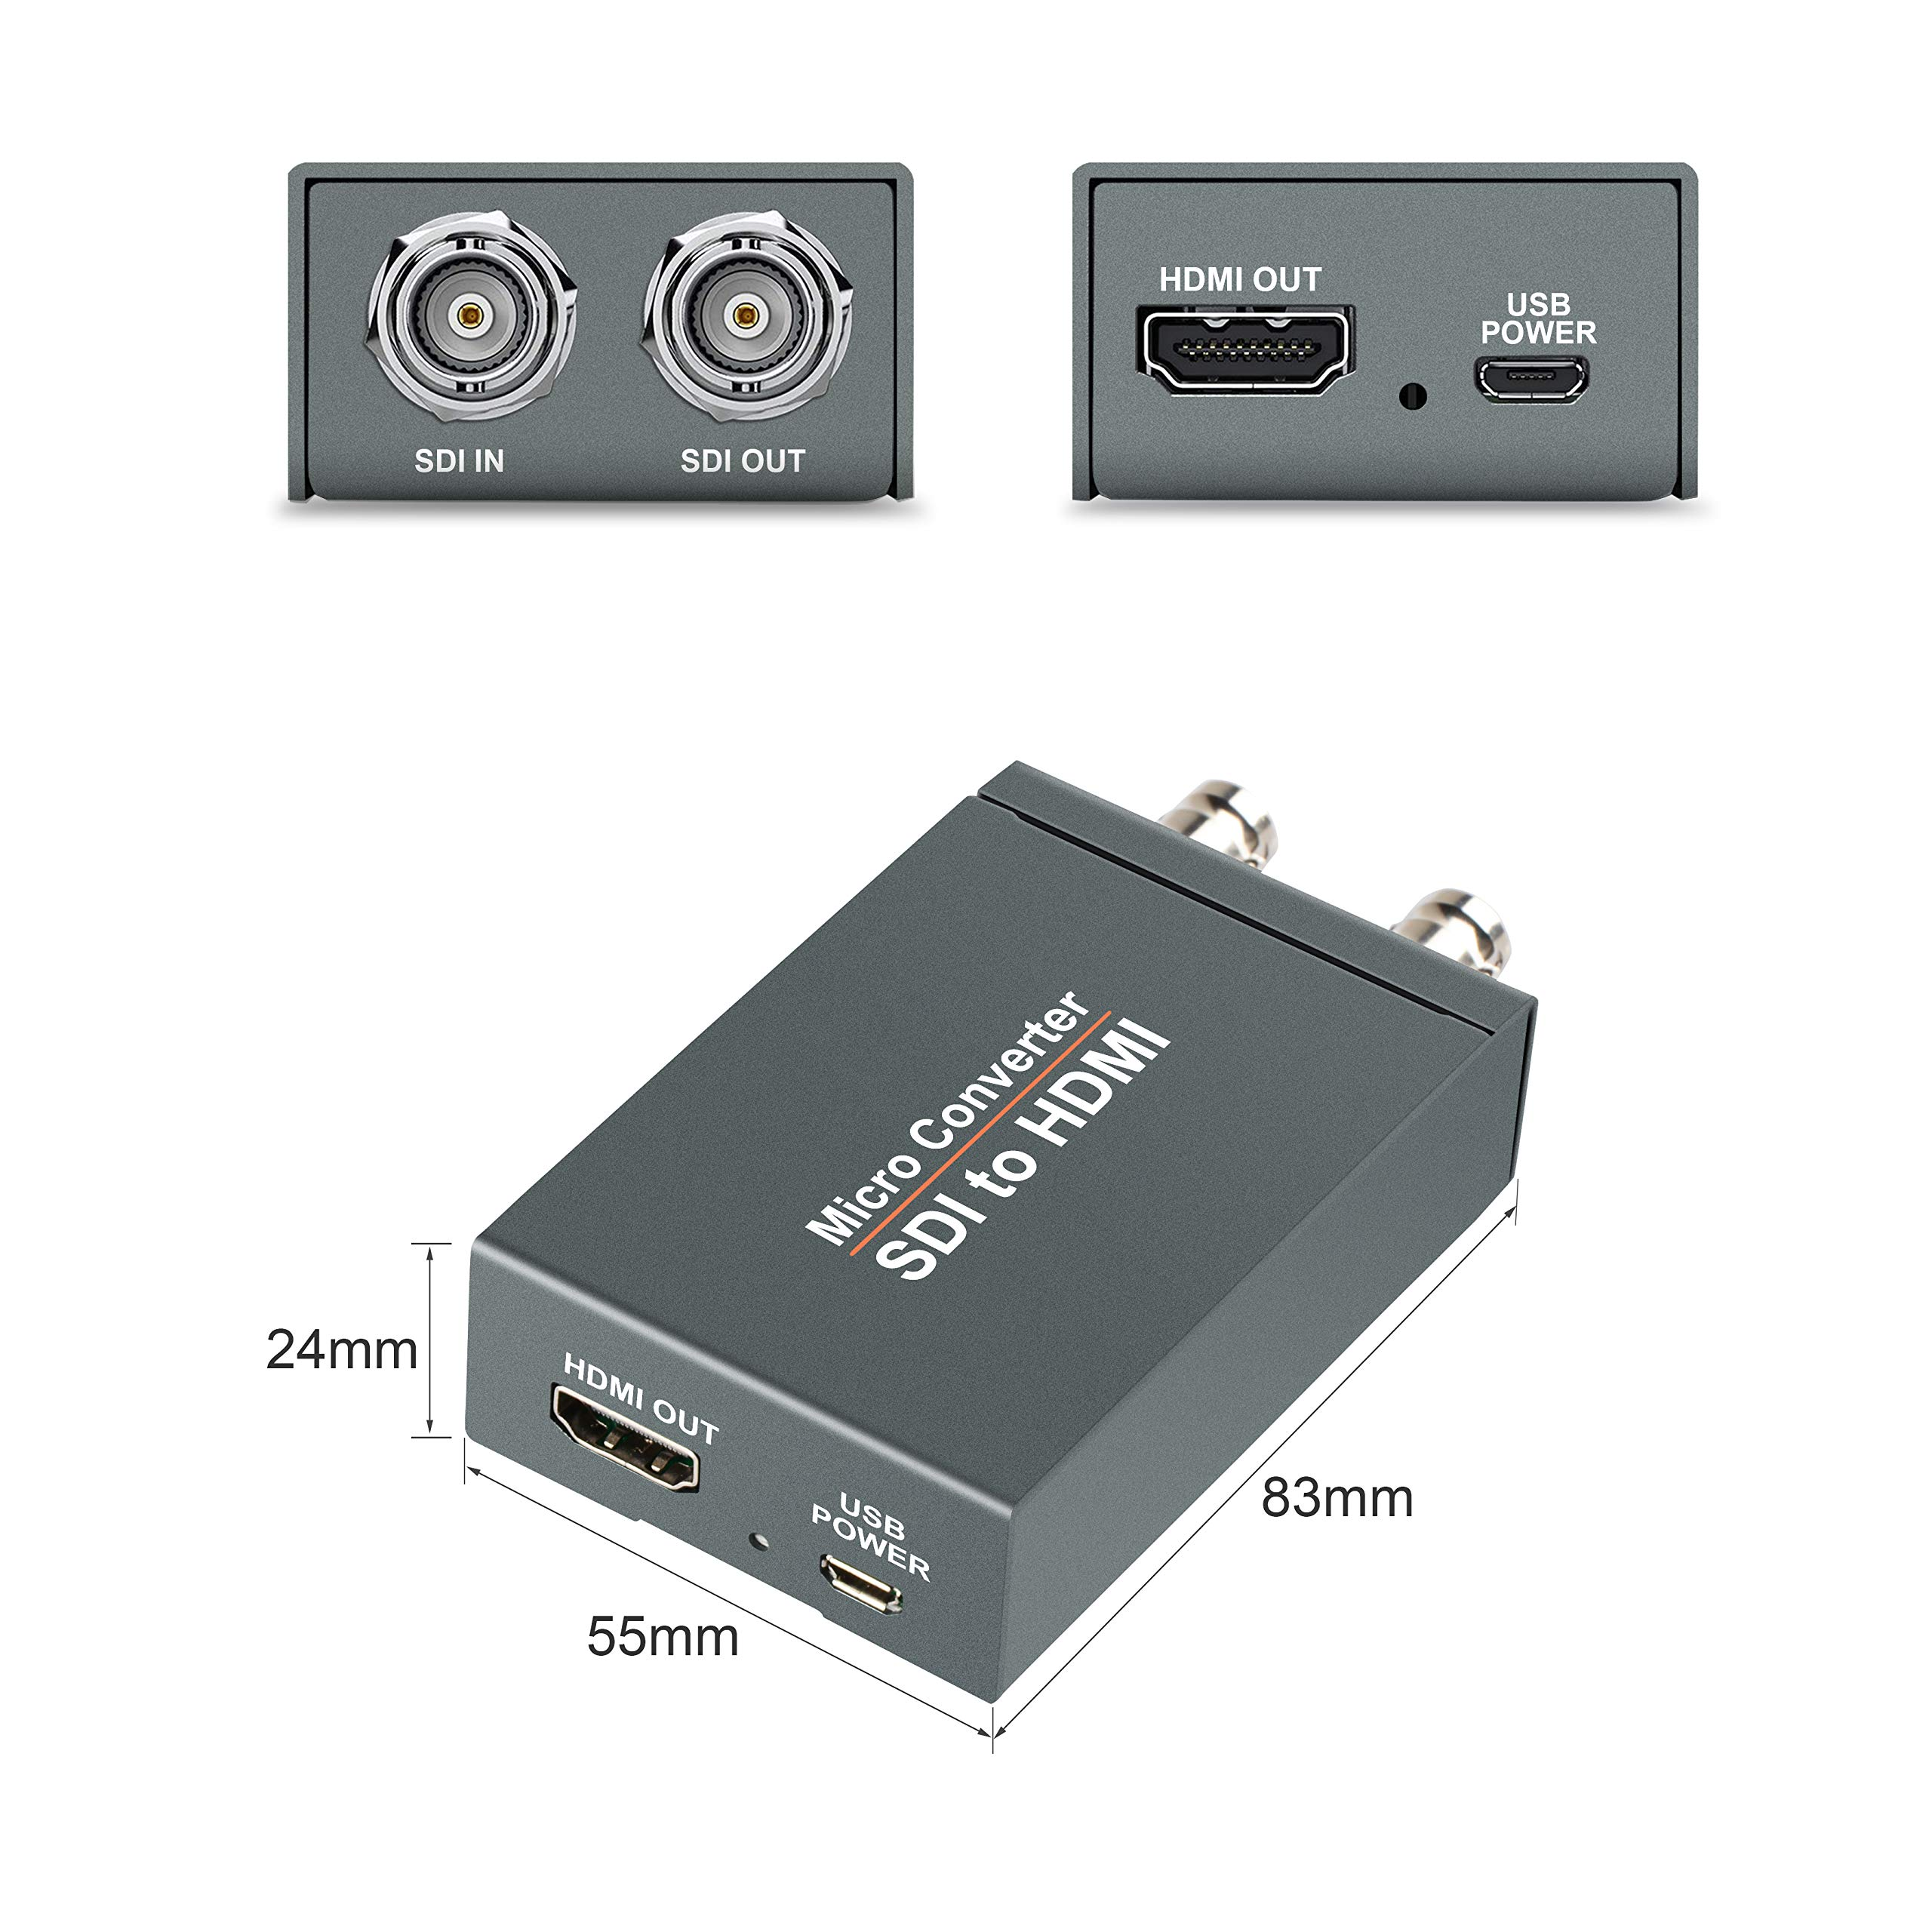 FERRISA Micro Converter SDI to HDMI(with Power Supply),3G-SDI/HD-SDI/SD-SDI to HDMI Converter Adapter,SDI in HDMI out SDI Loopout,1080P Video Audio Splitter,Support HDCP 1.3 for Camcorder Camera to TV by FERRISA (Image #6)